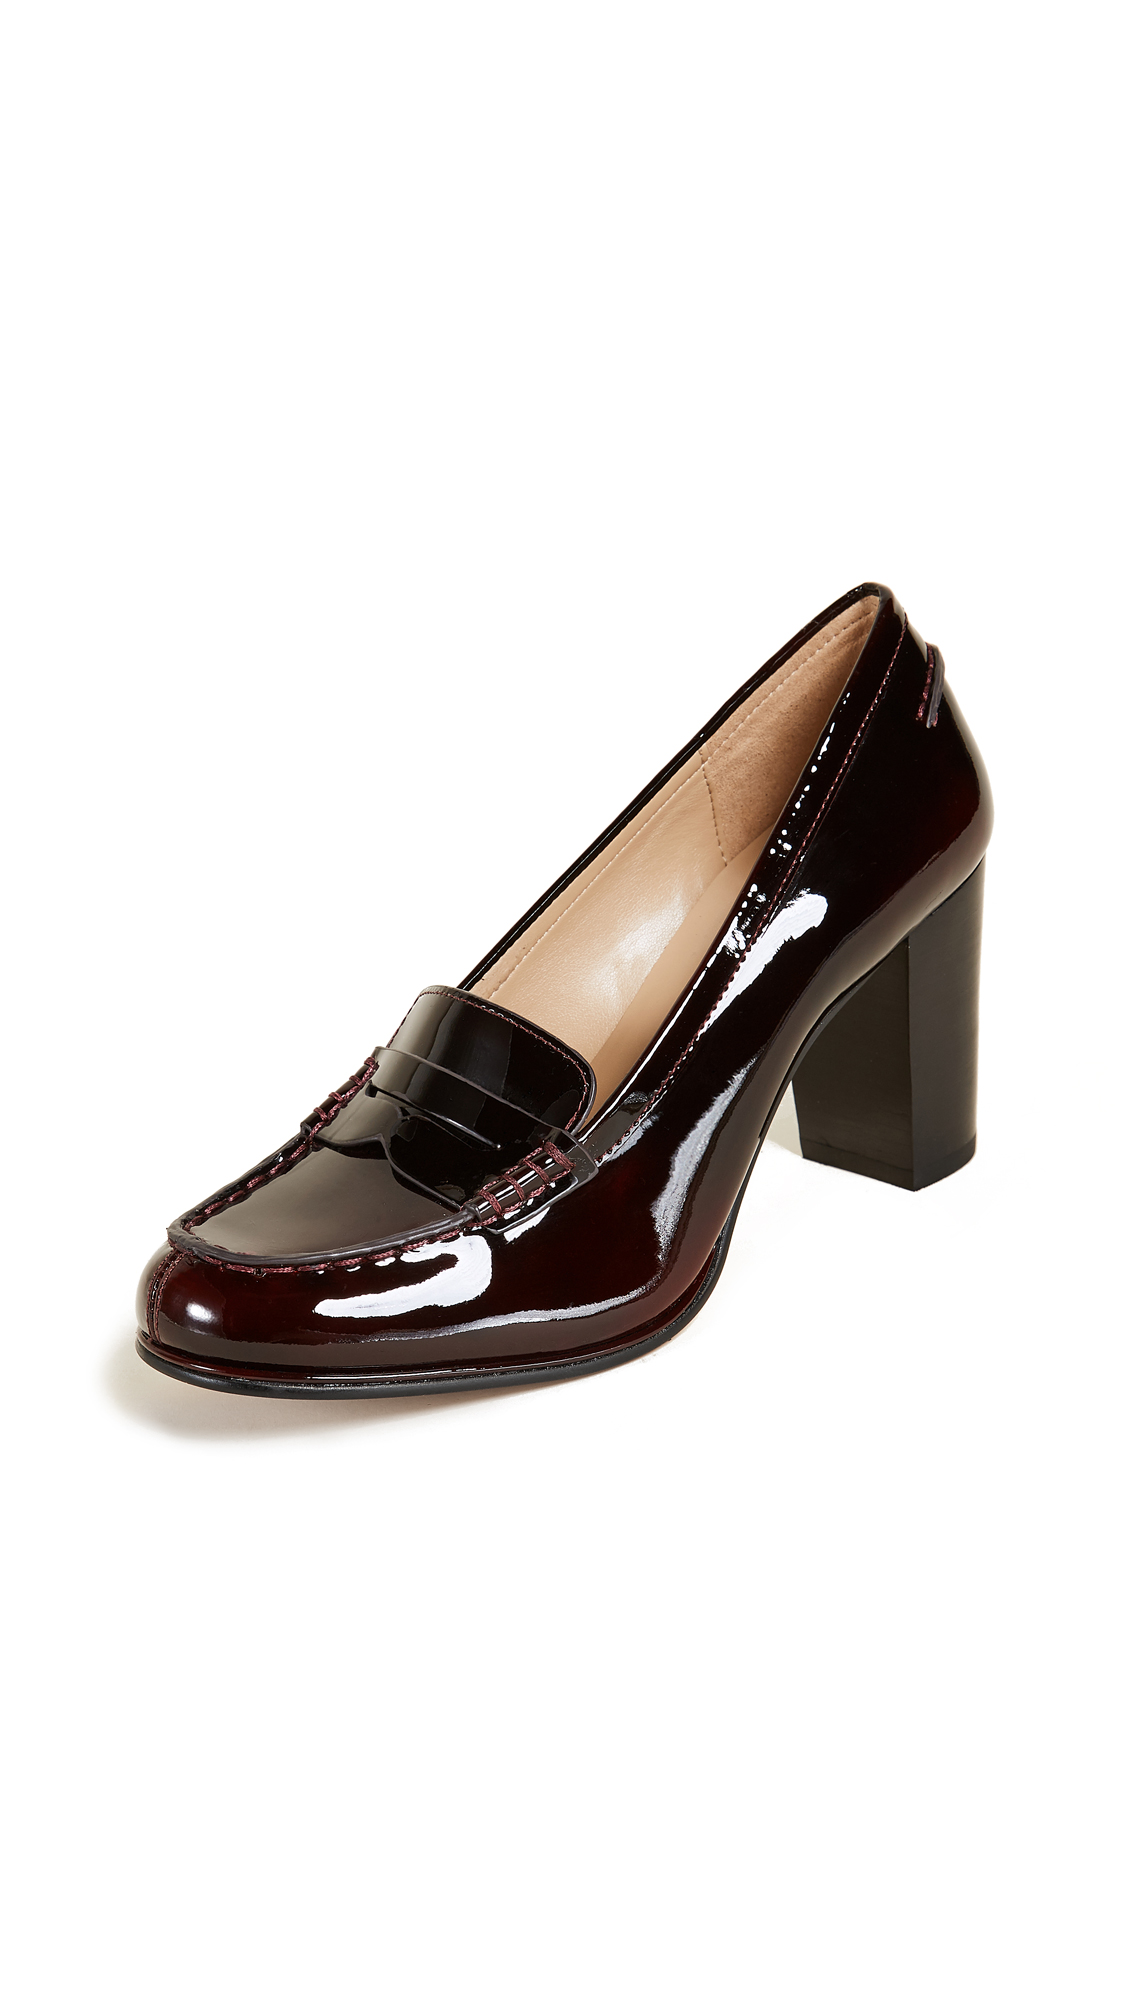 MICHAEL Michael Kors Bayville Heeled Loafers - Deep Red